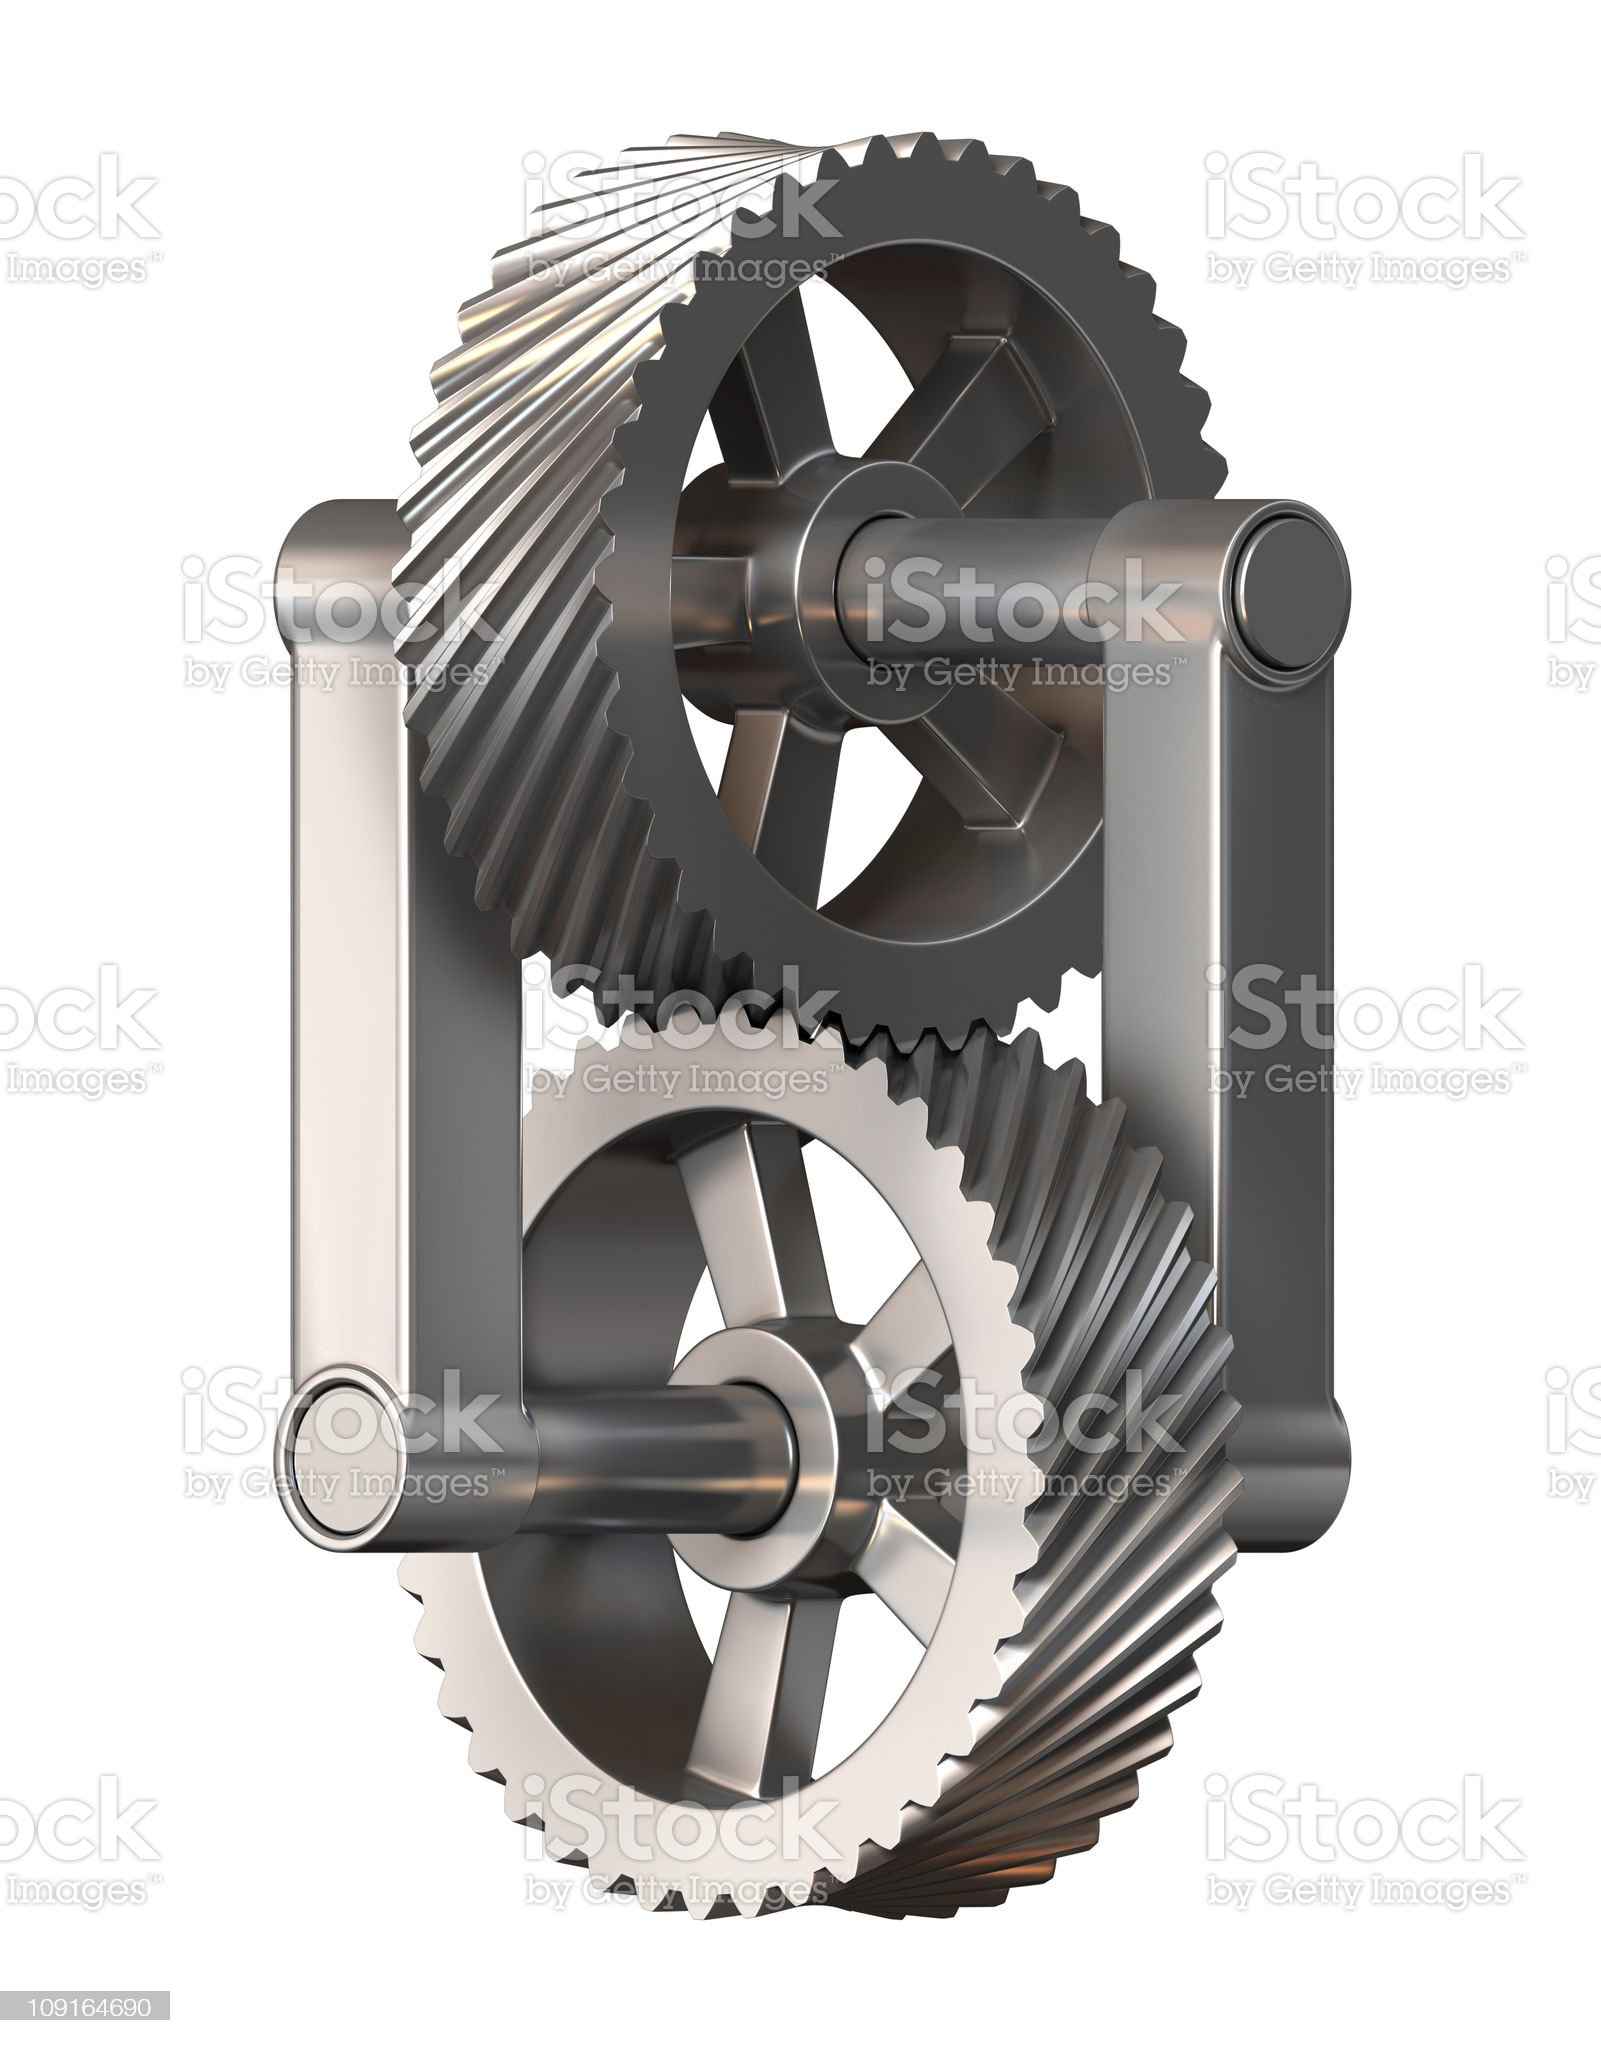 Impossible mechanism royalty-free stock vector art